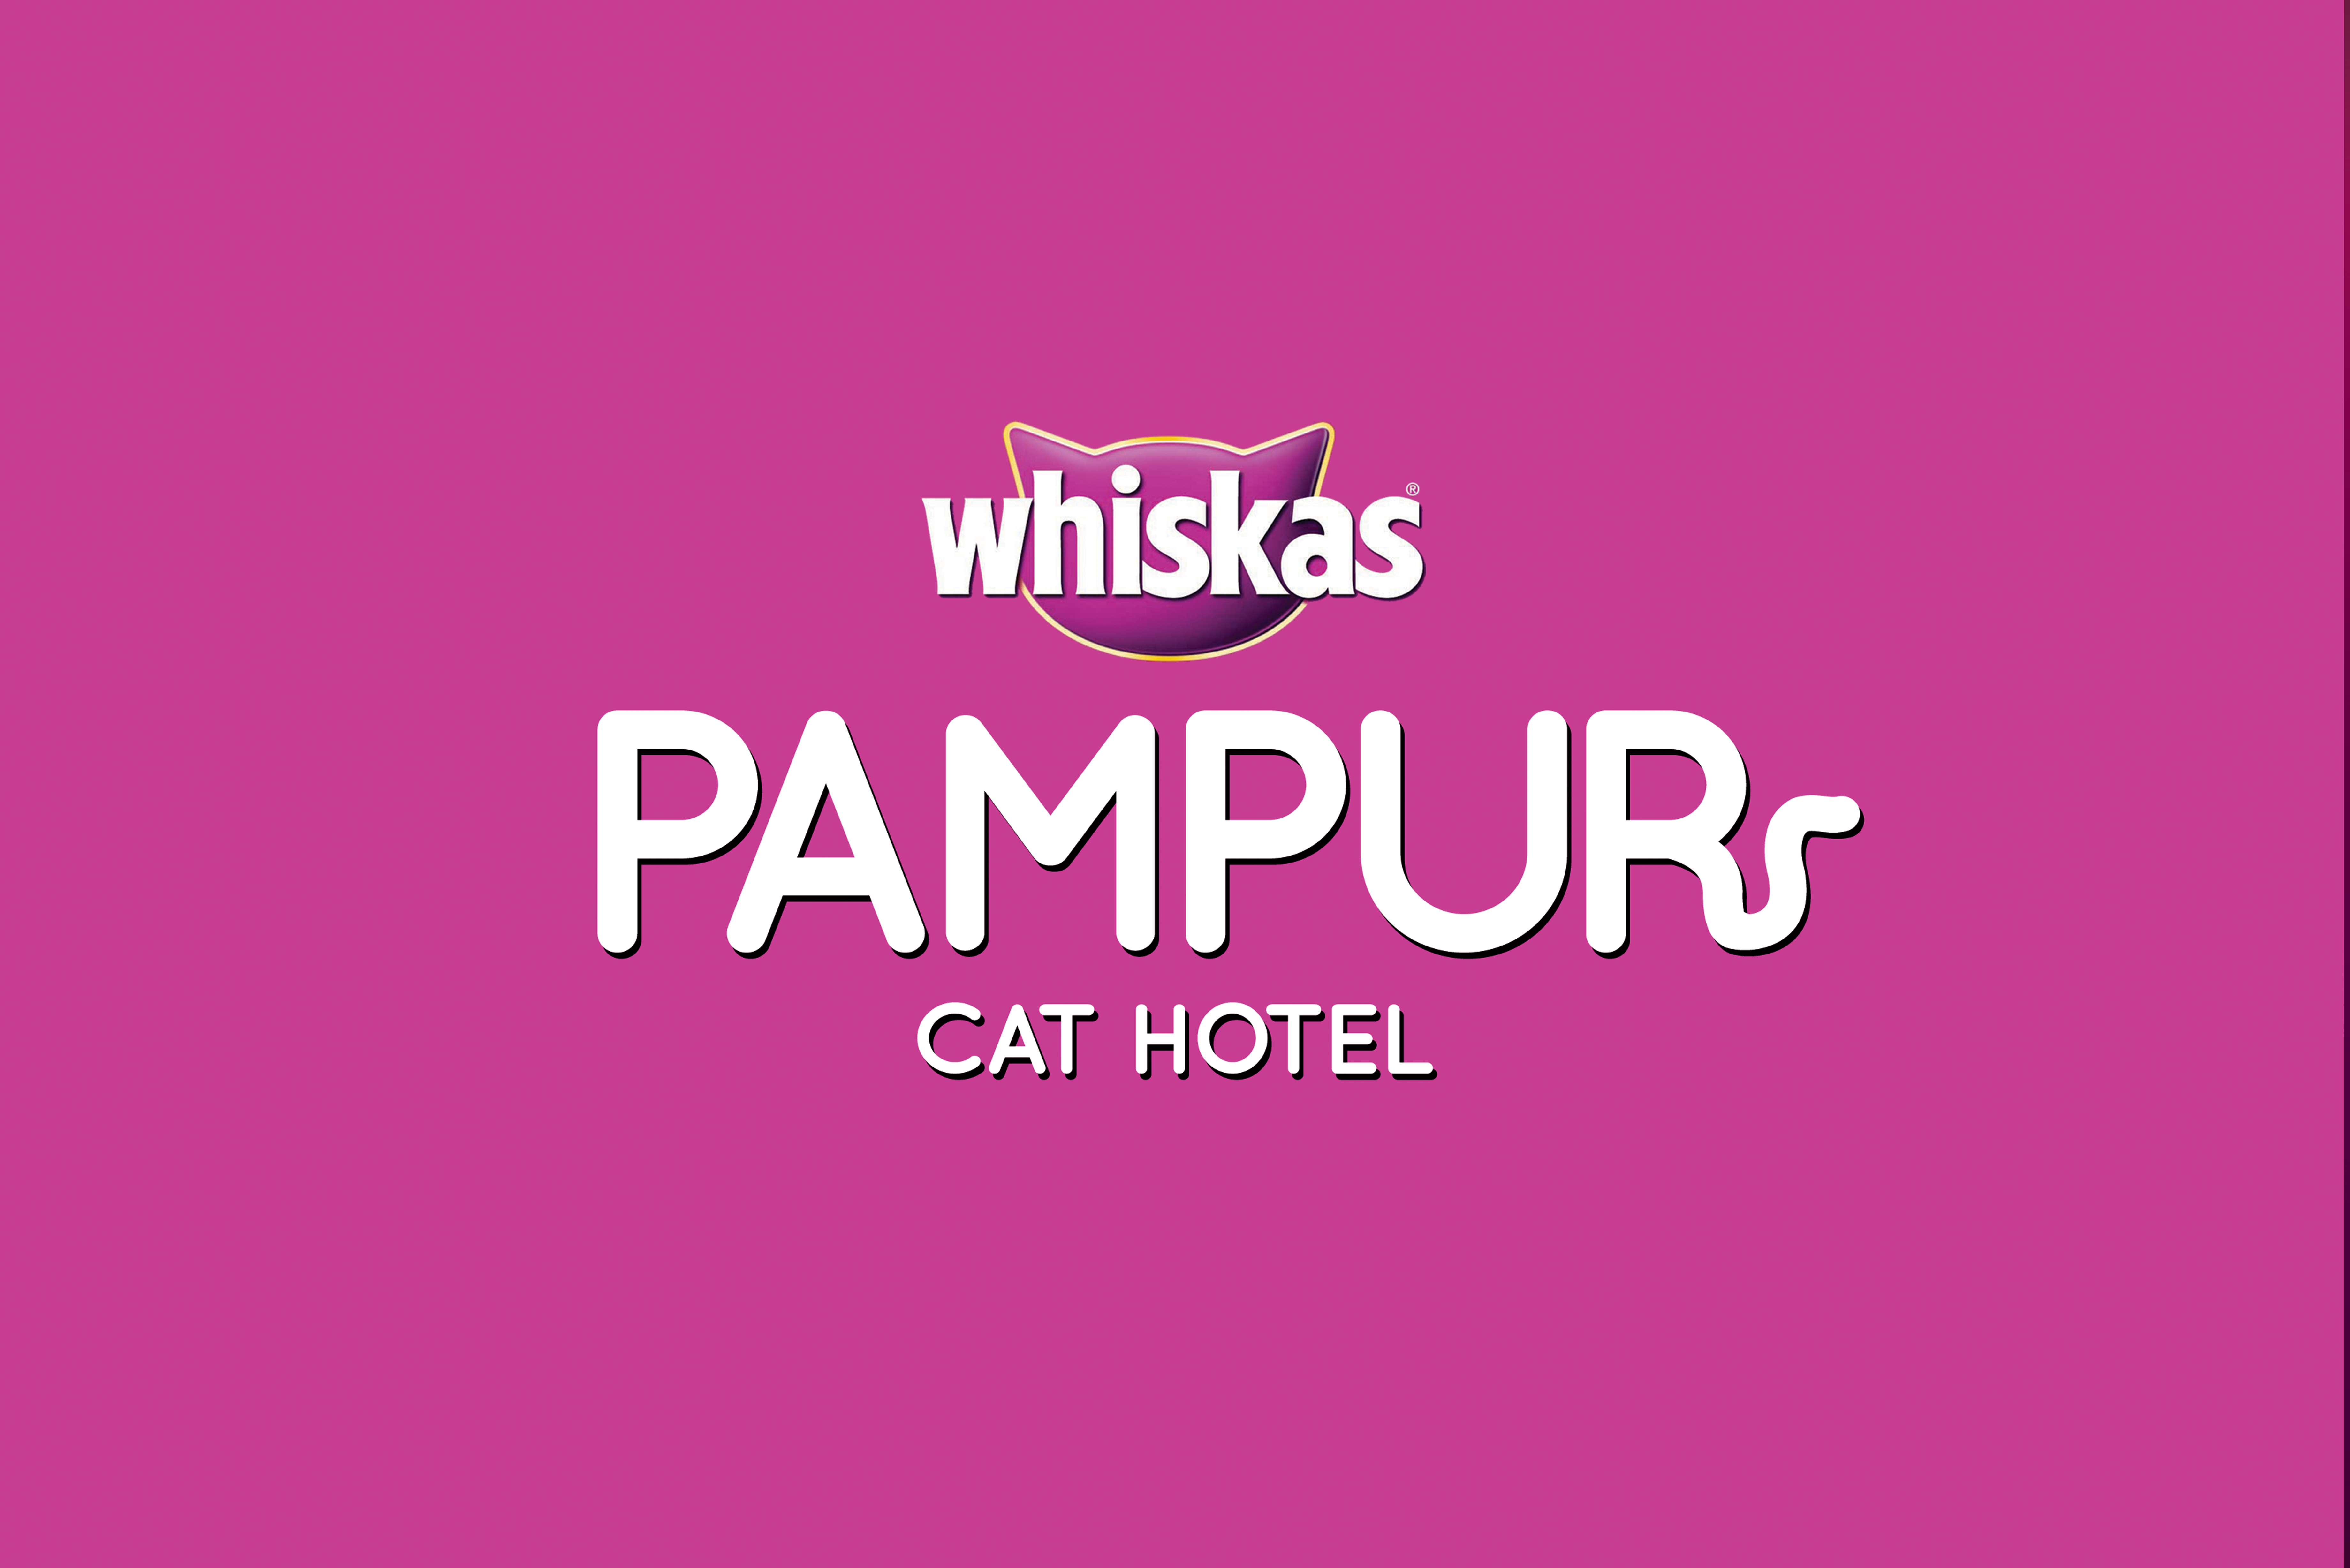 Pampur Cat Hotel